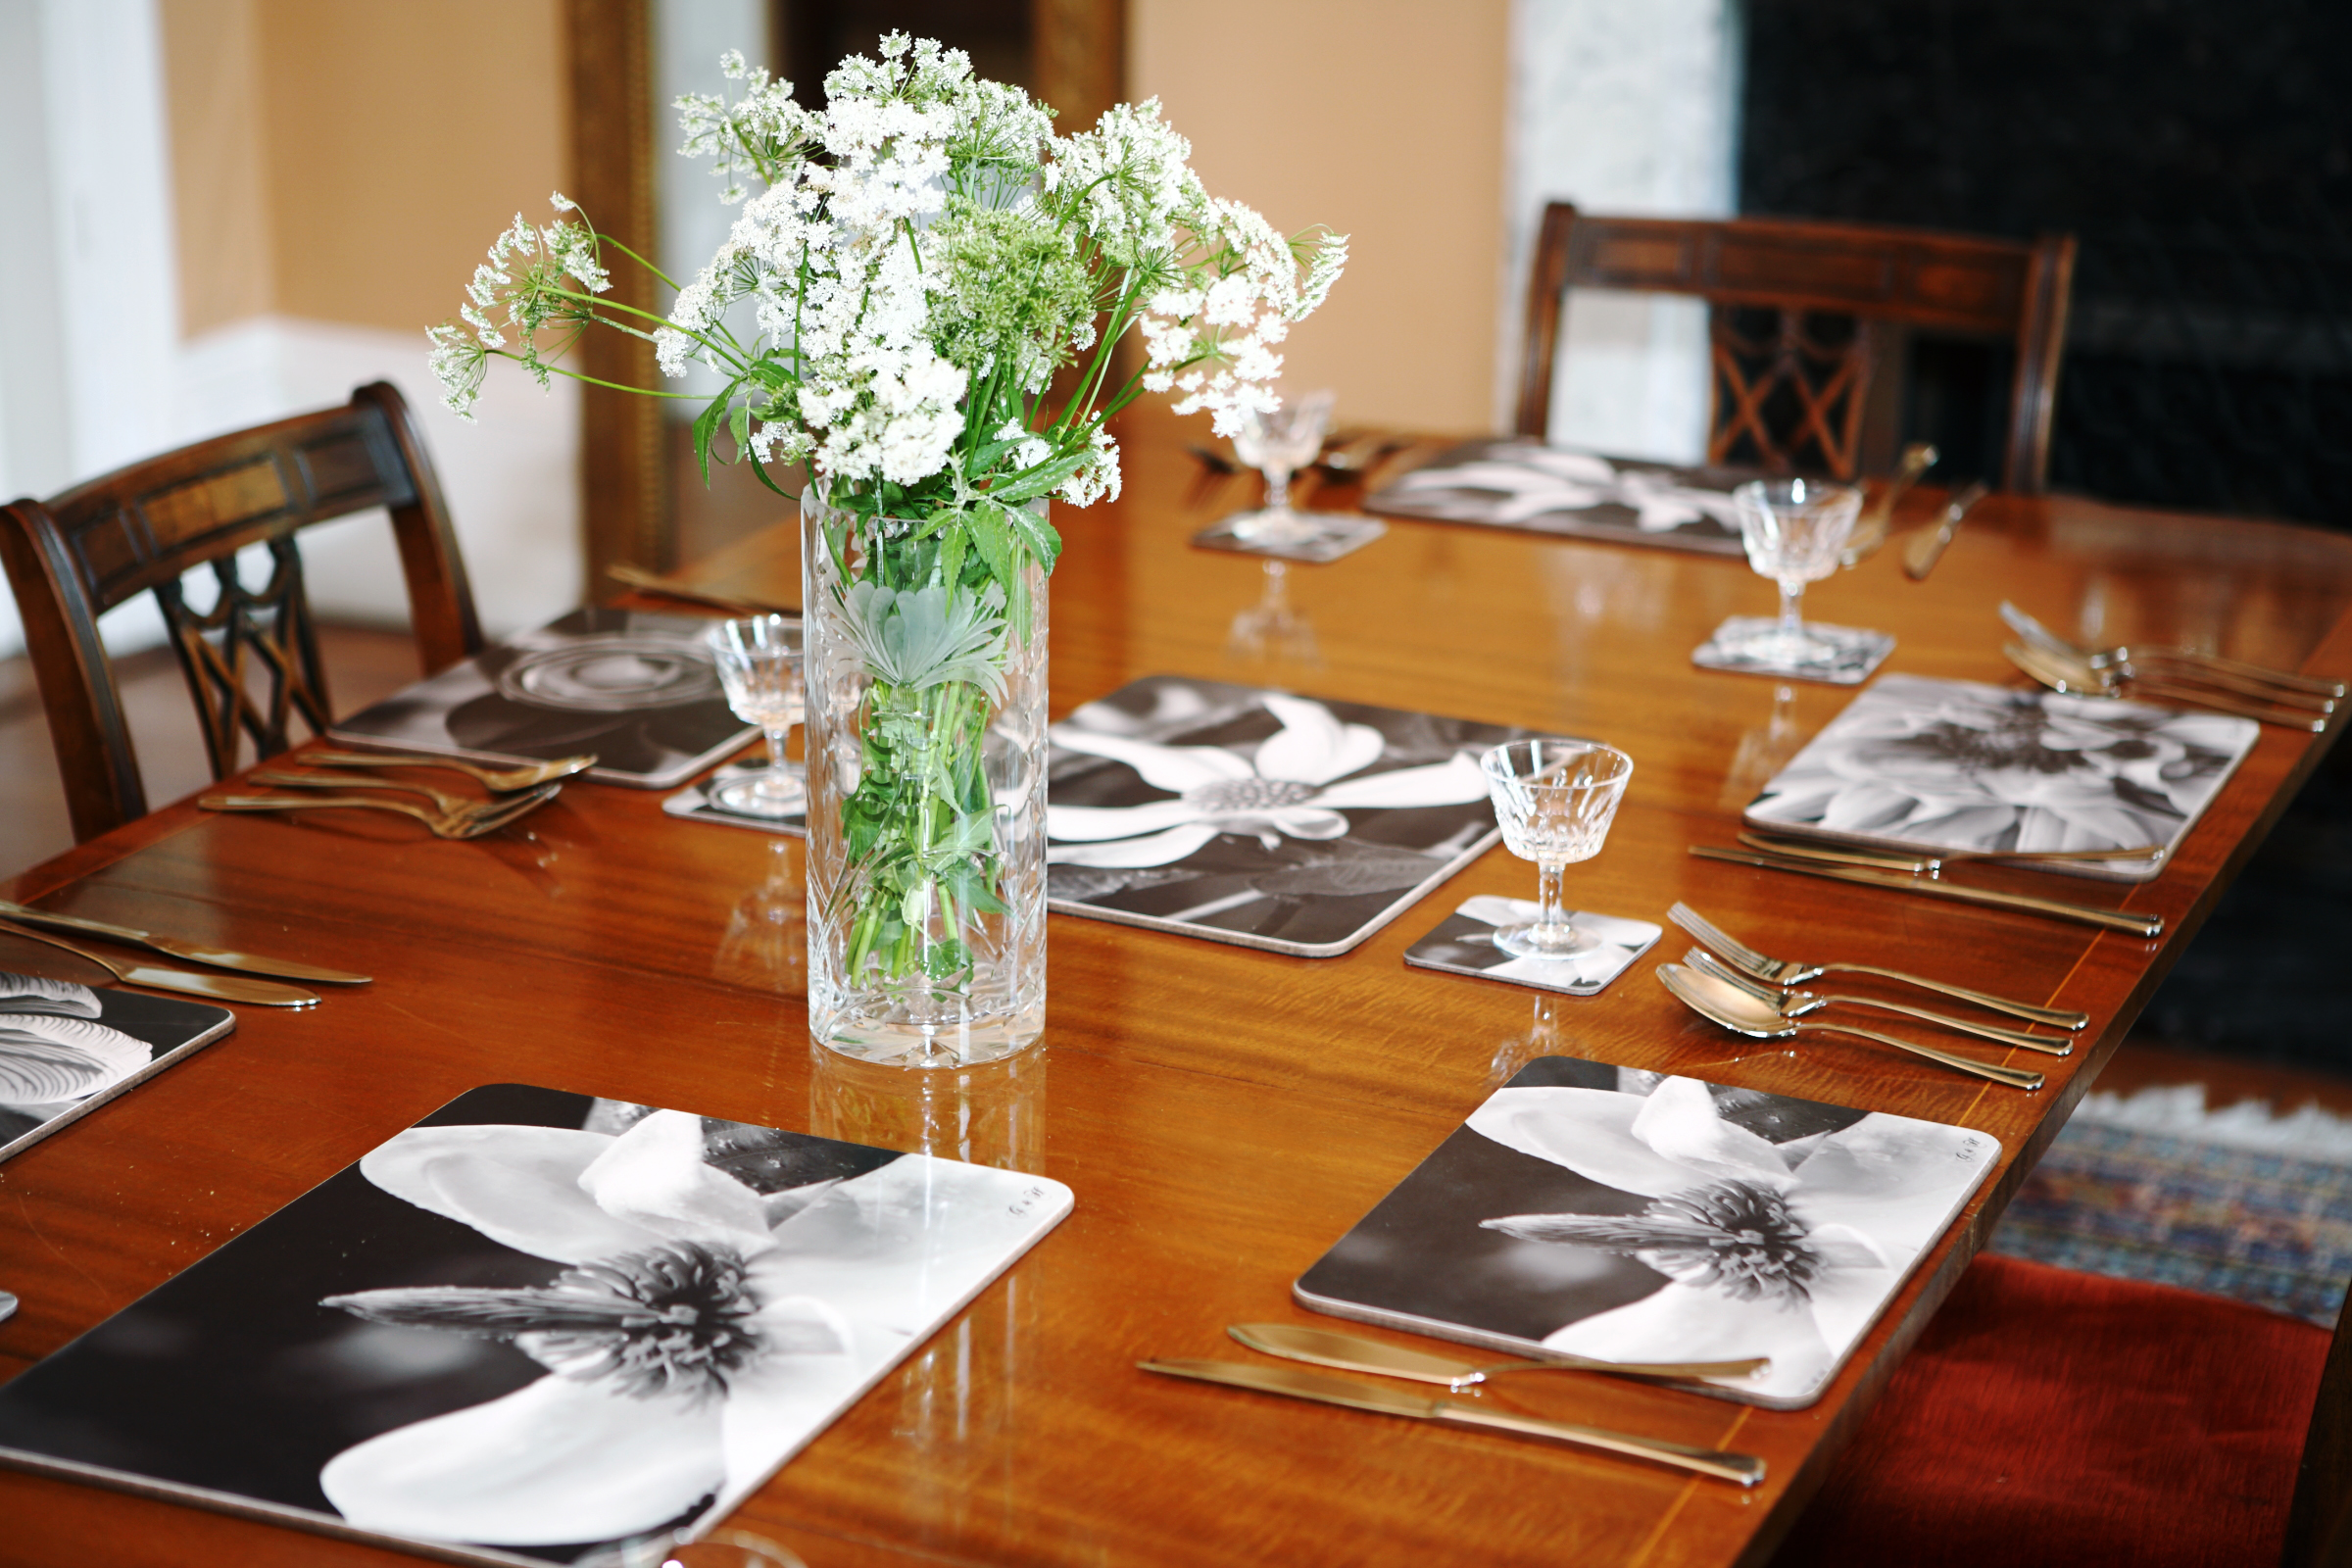 B&W placemats table laid_01